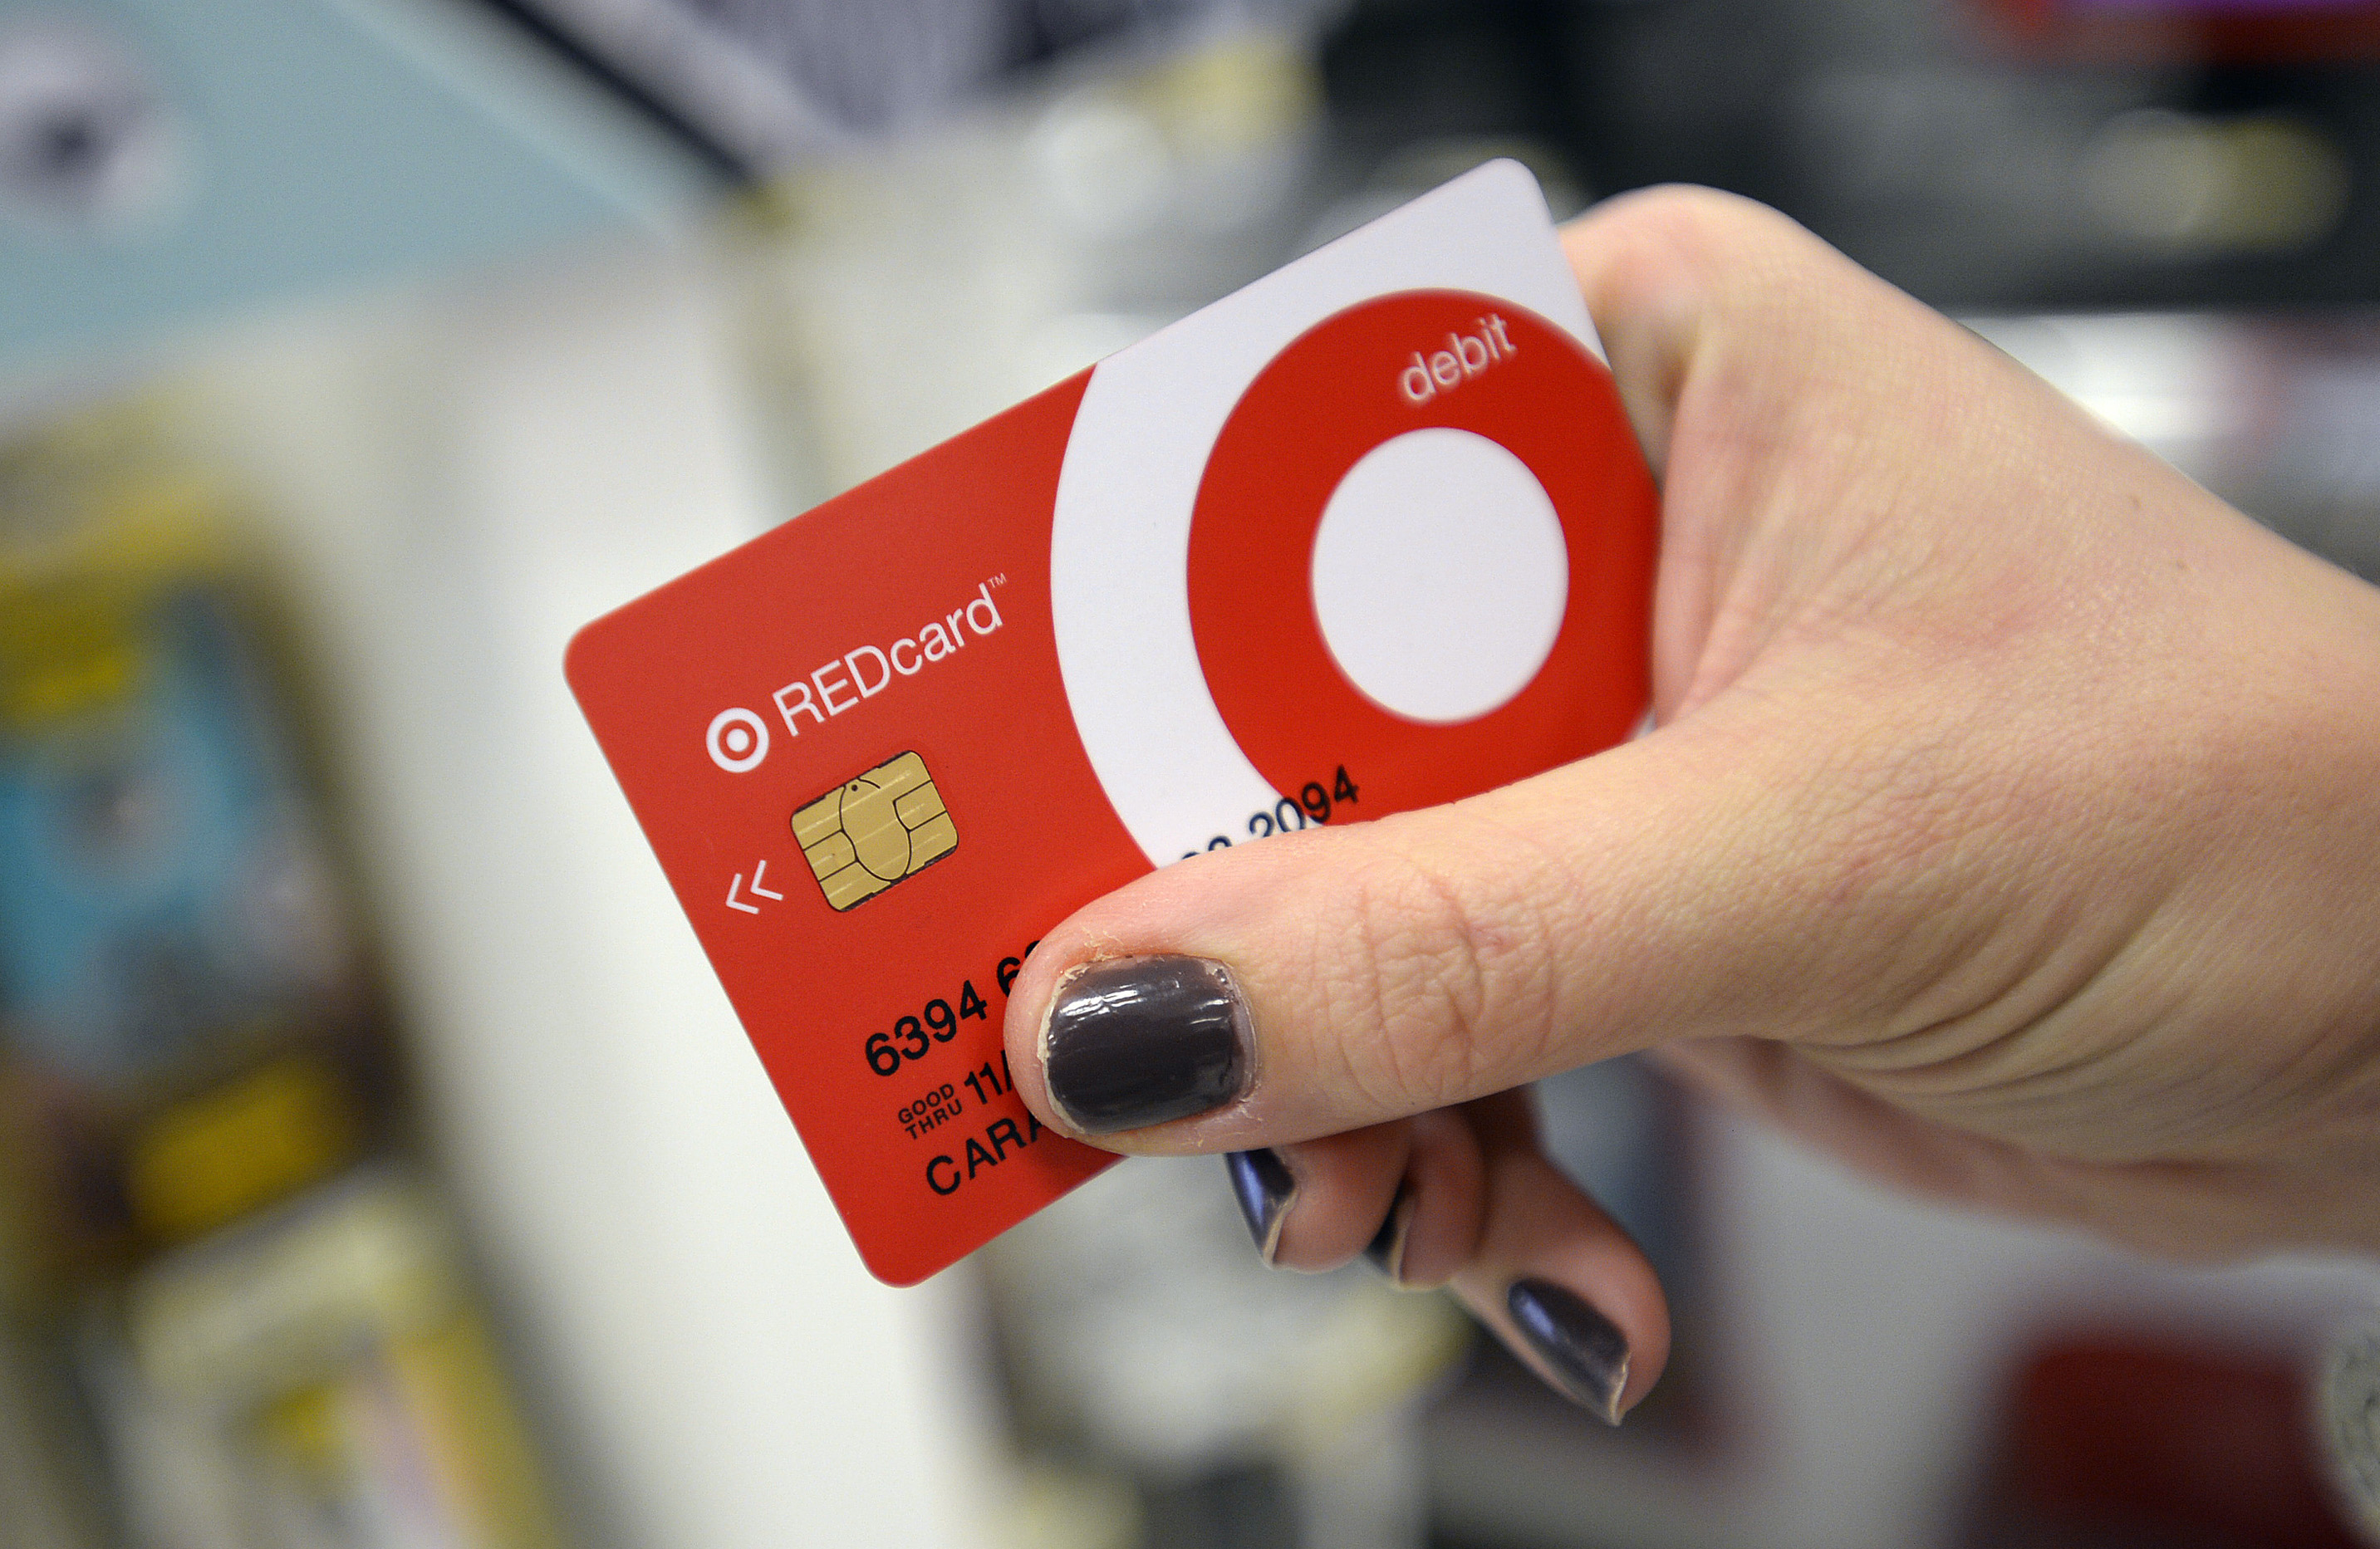 Target offers chip cards to its customers